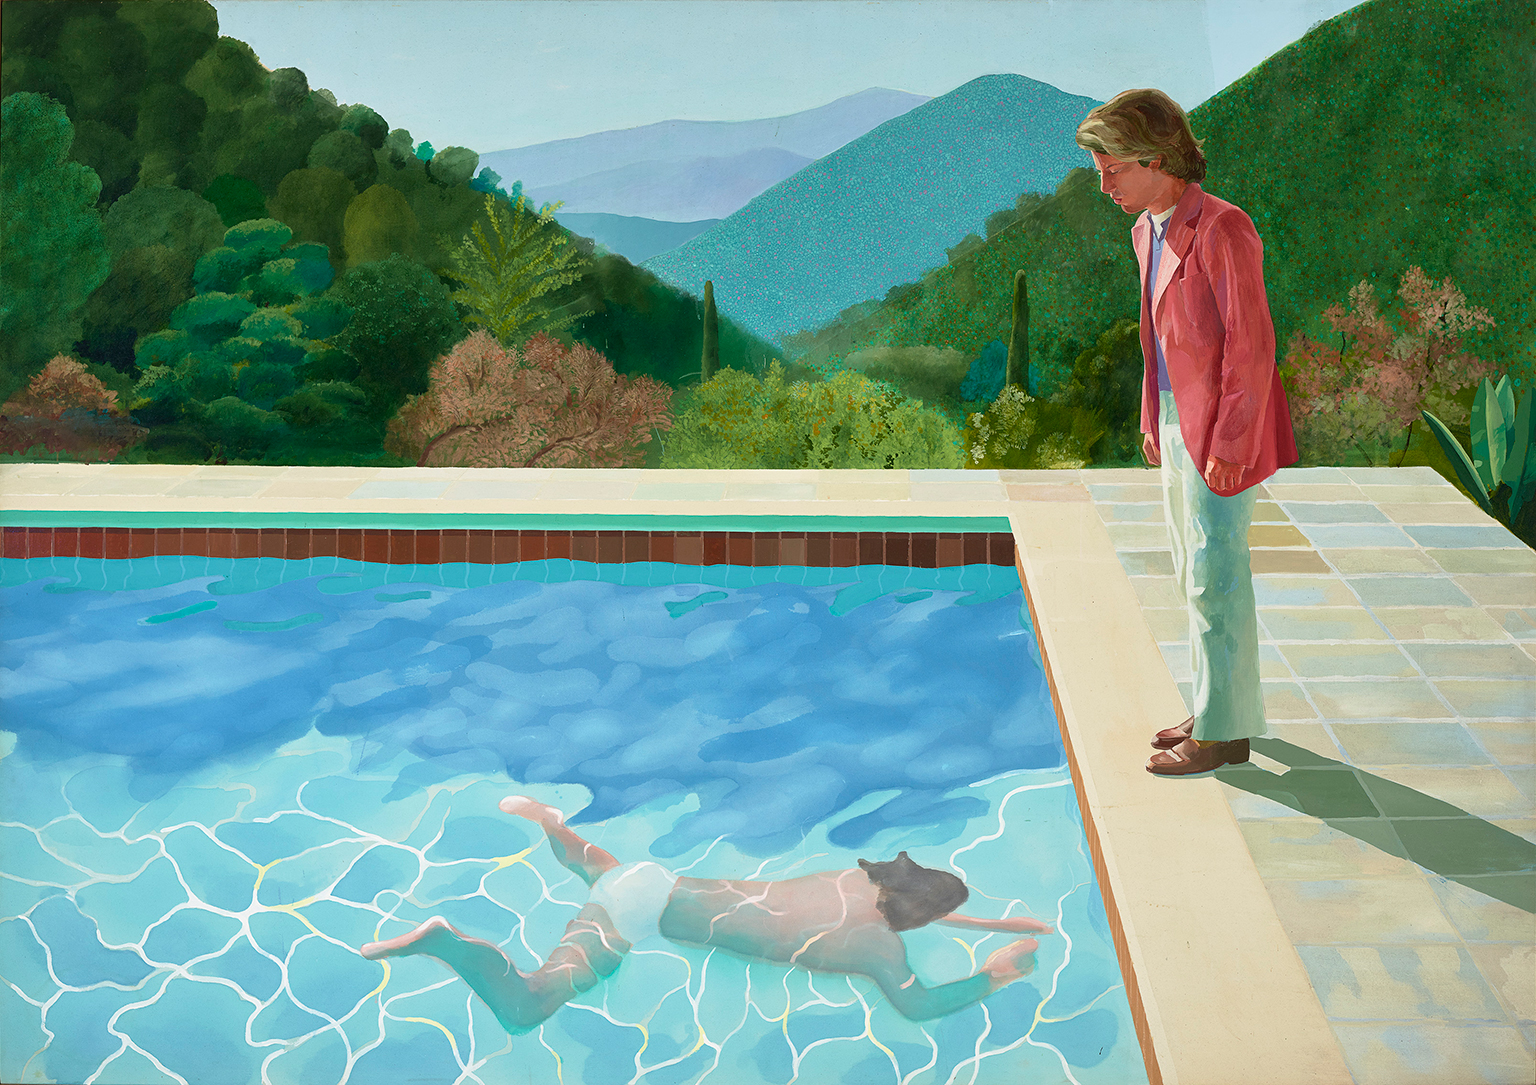 David Hockney, Portrait of an Artist (Pool with Two Figures), 1971